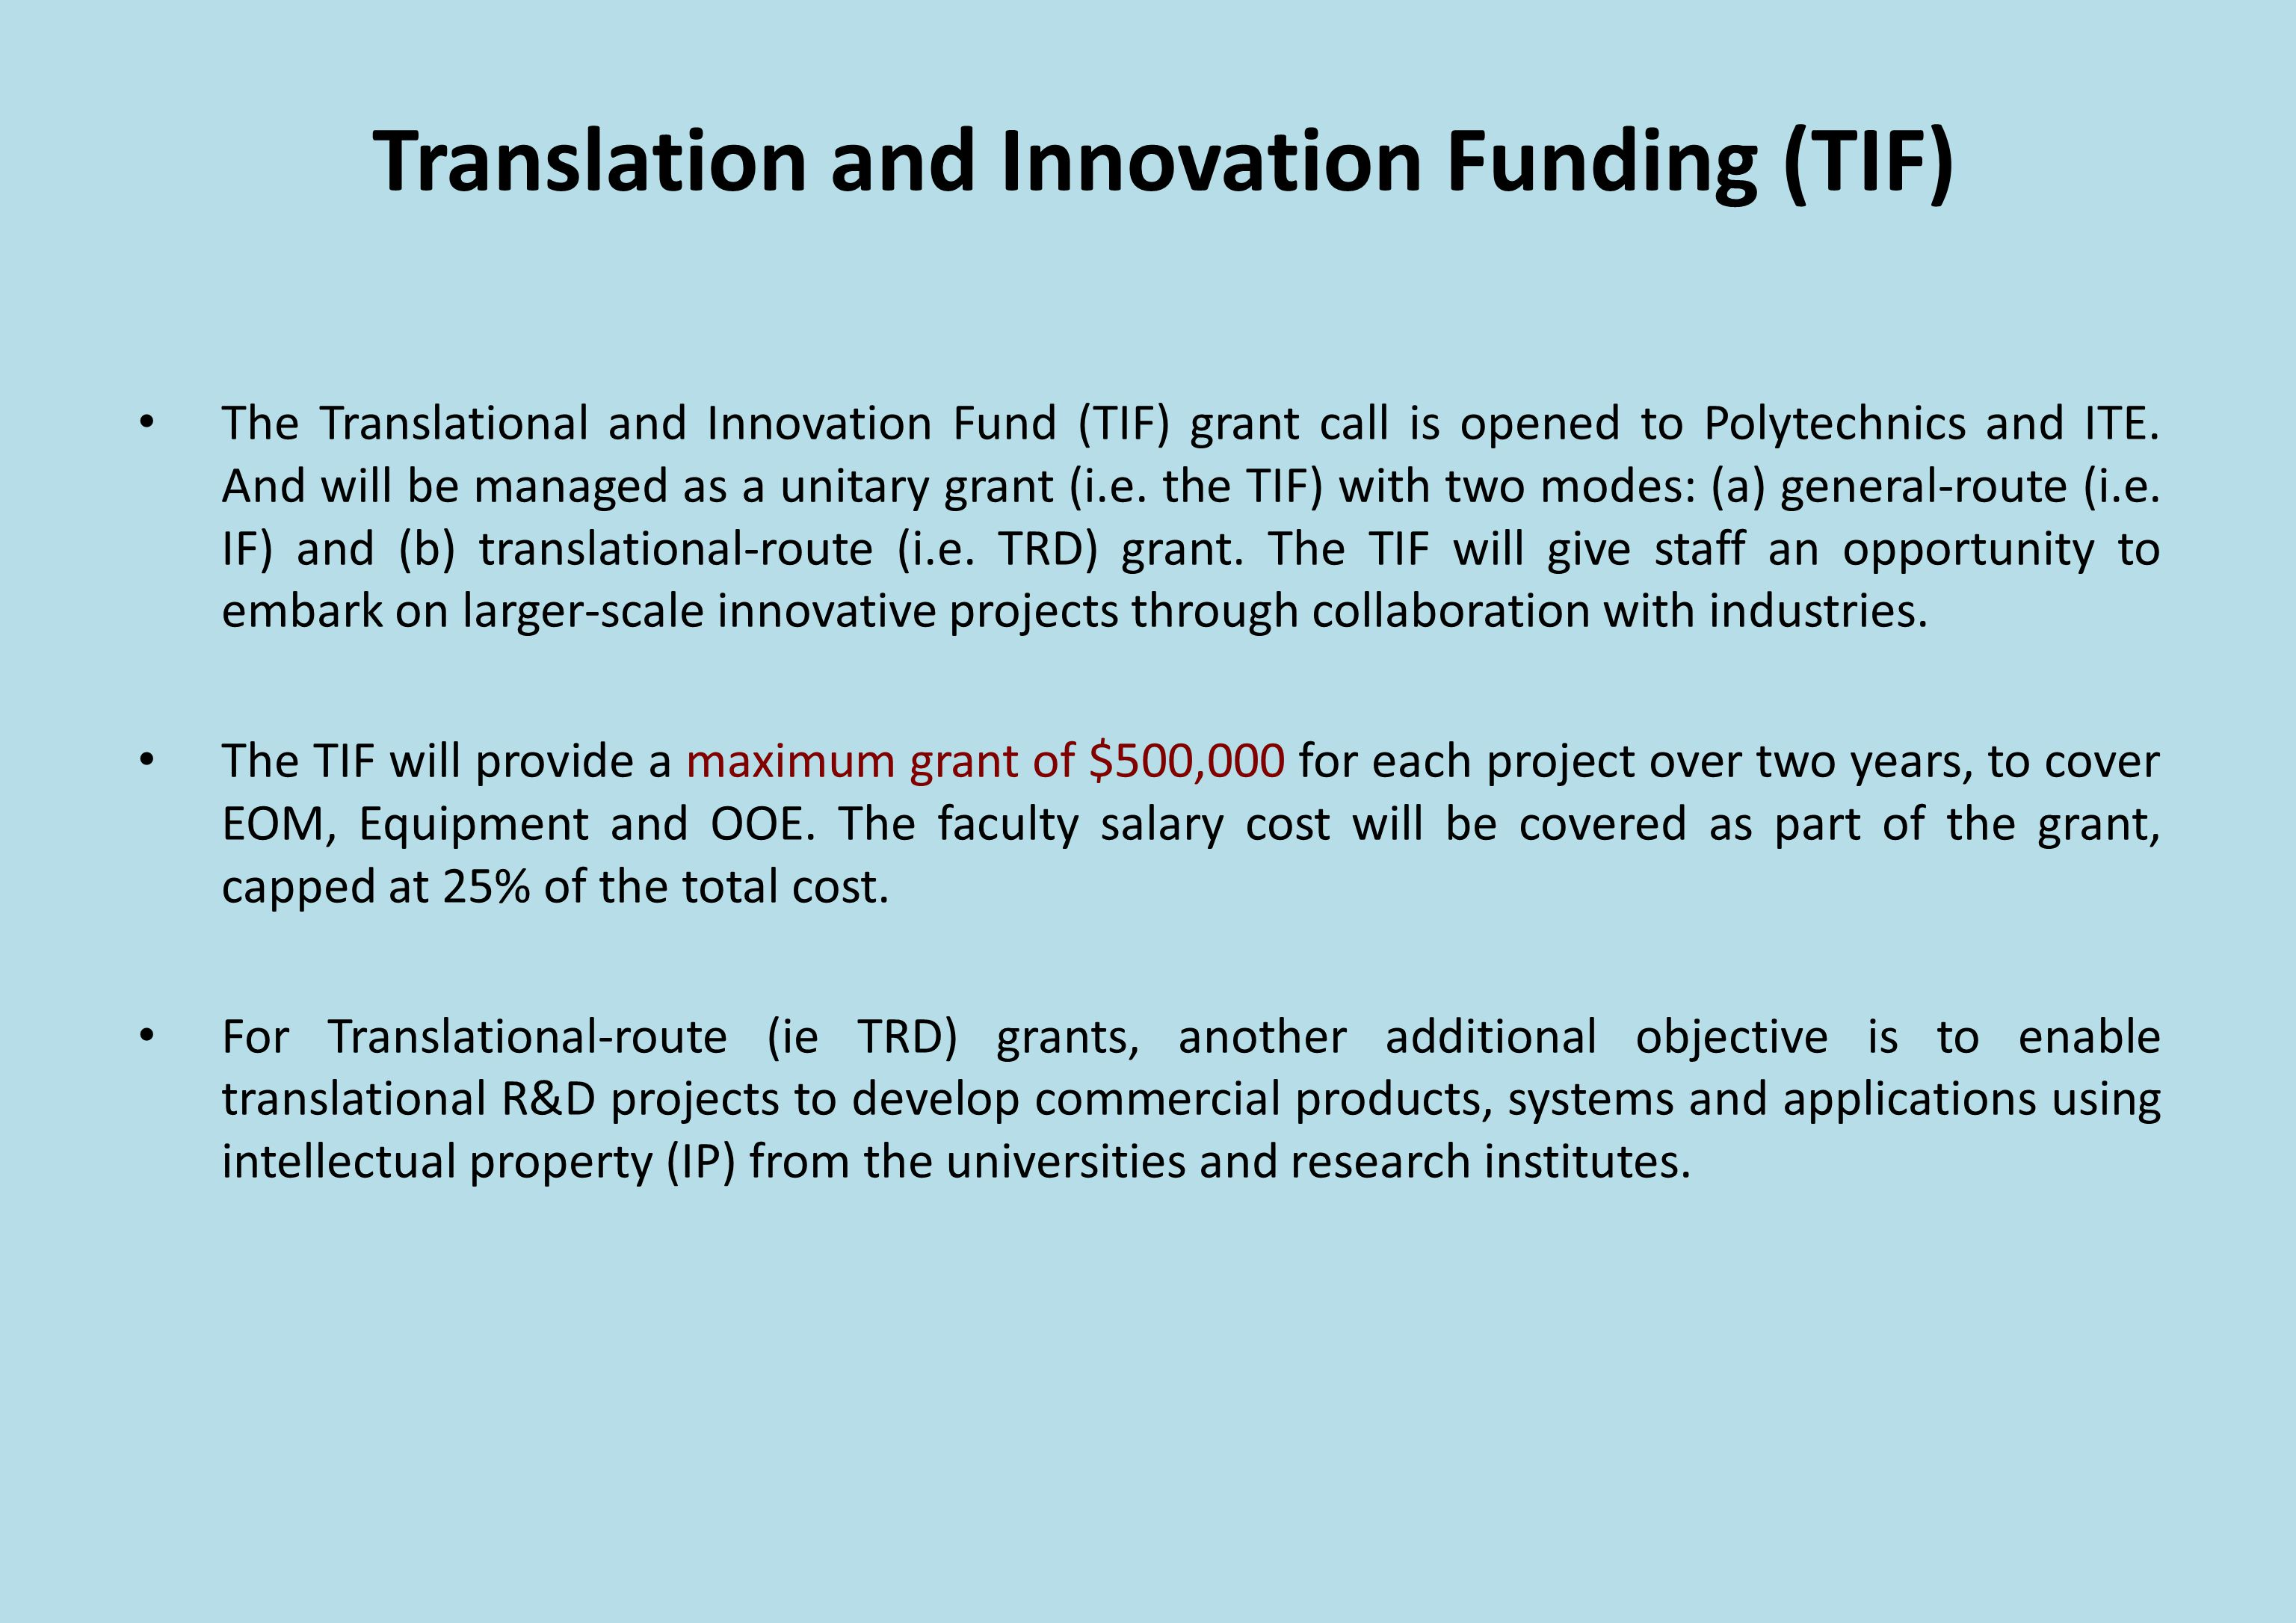 Translation and Innovation Funding (TIF) The Translational and Innovation Fund (TIF) grant call is opened to Polytechnics and ITE.